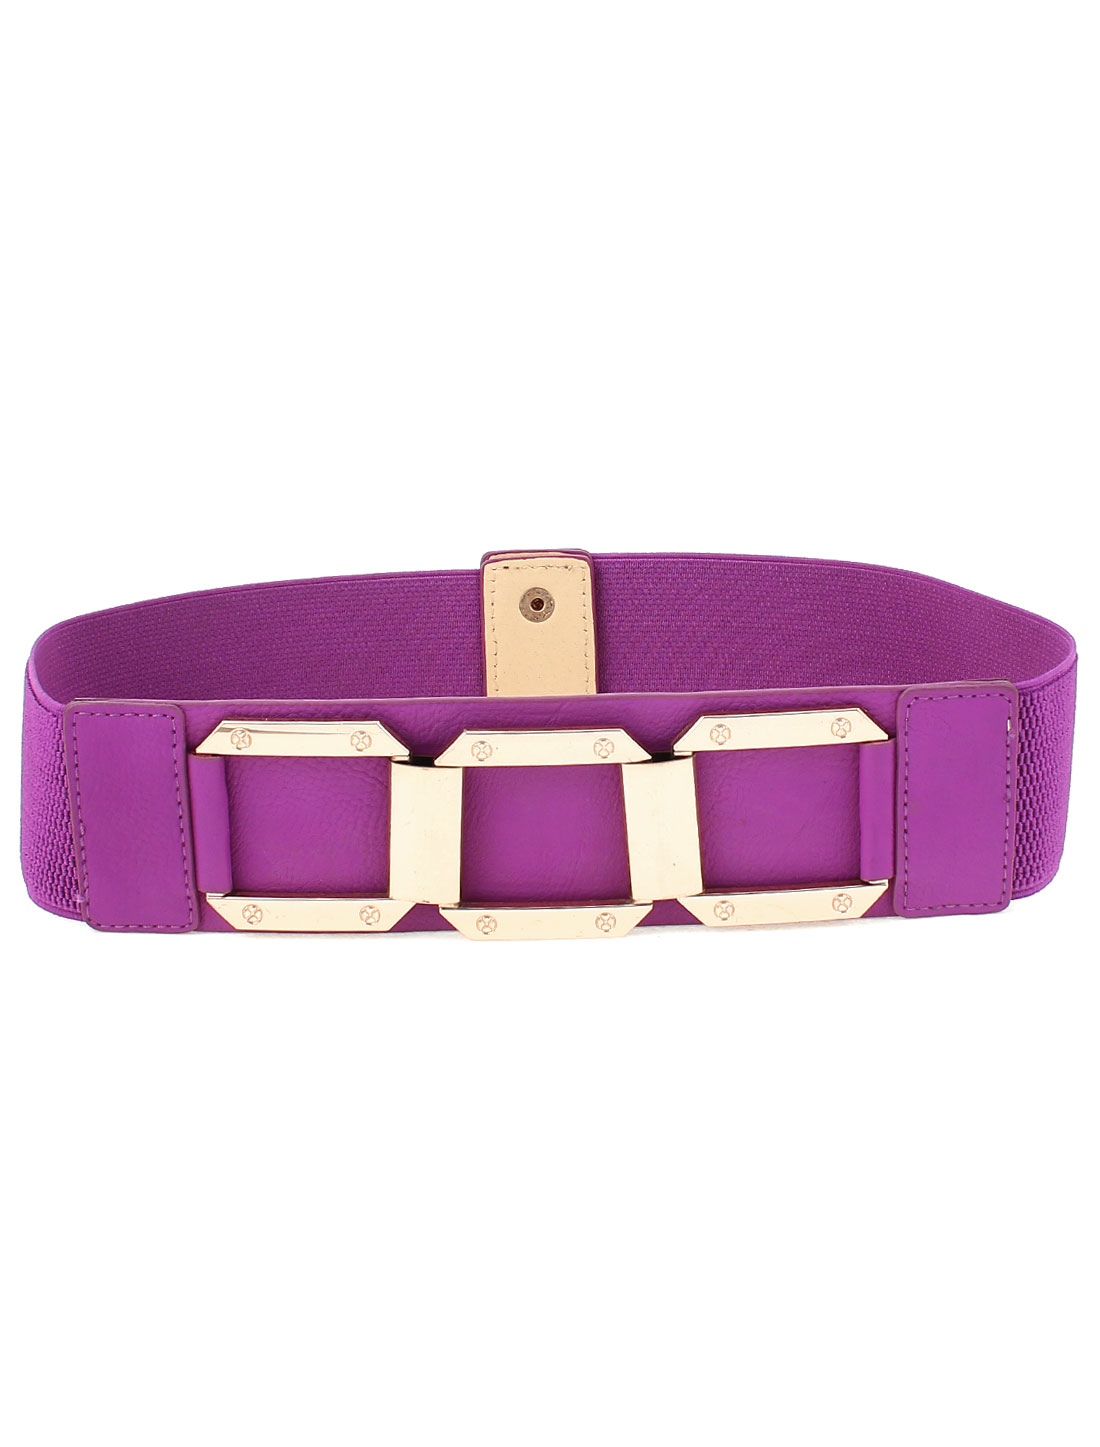 Lady Metal Circle Interlock Buckle Elastic Waist Belt Waistband Purple